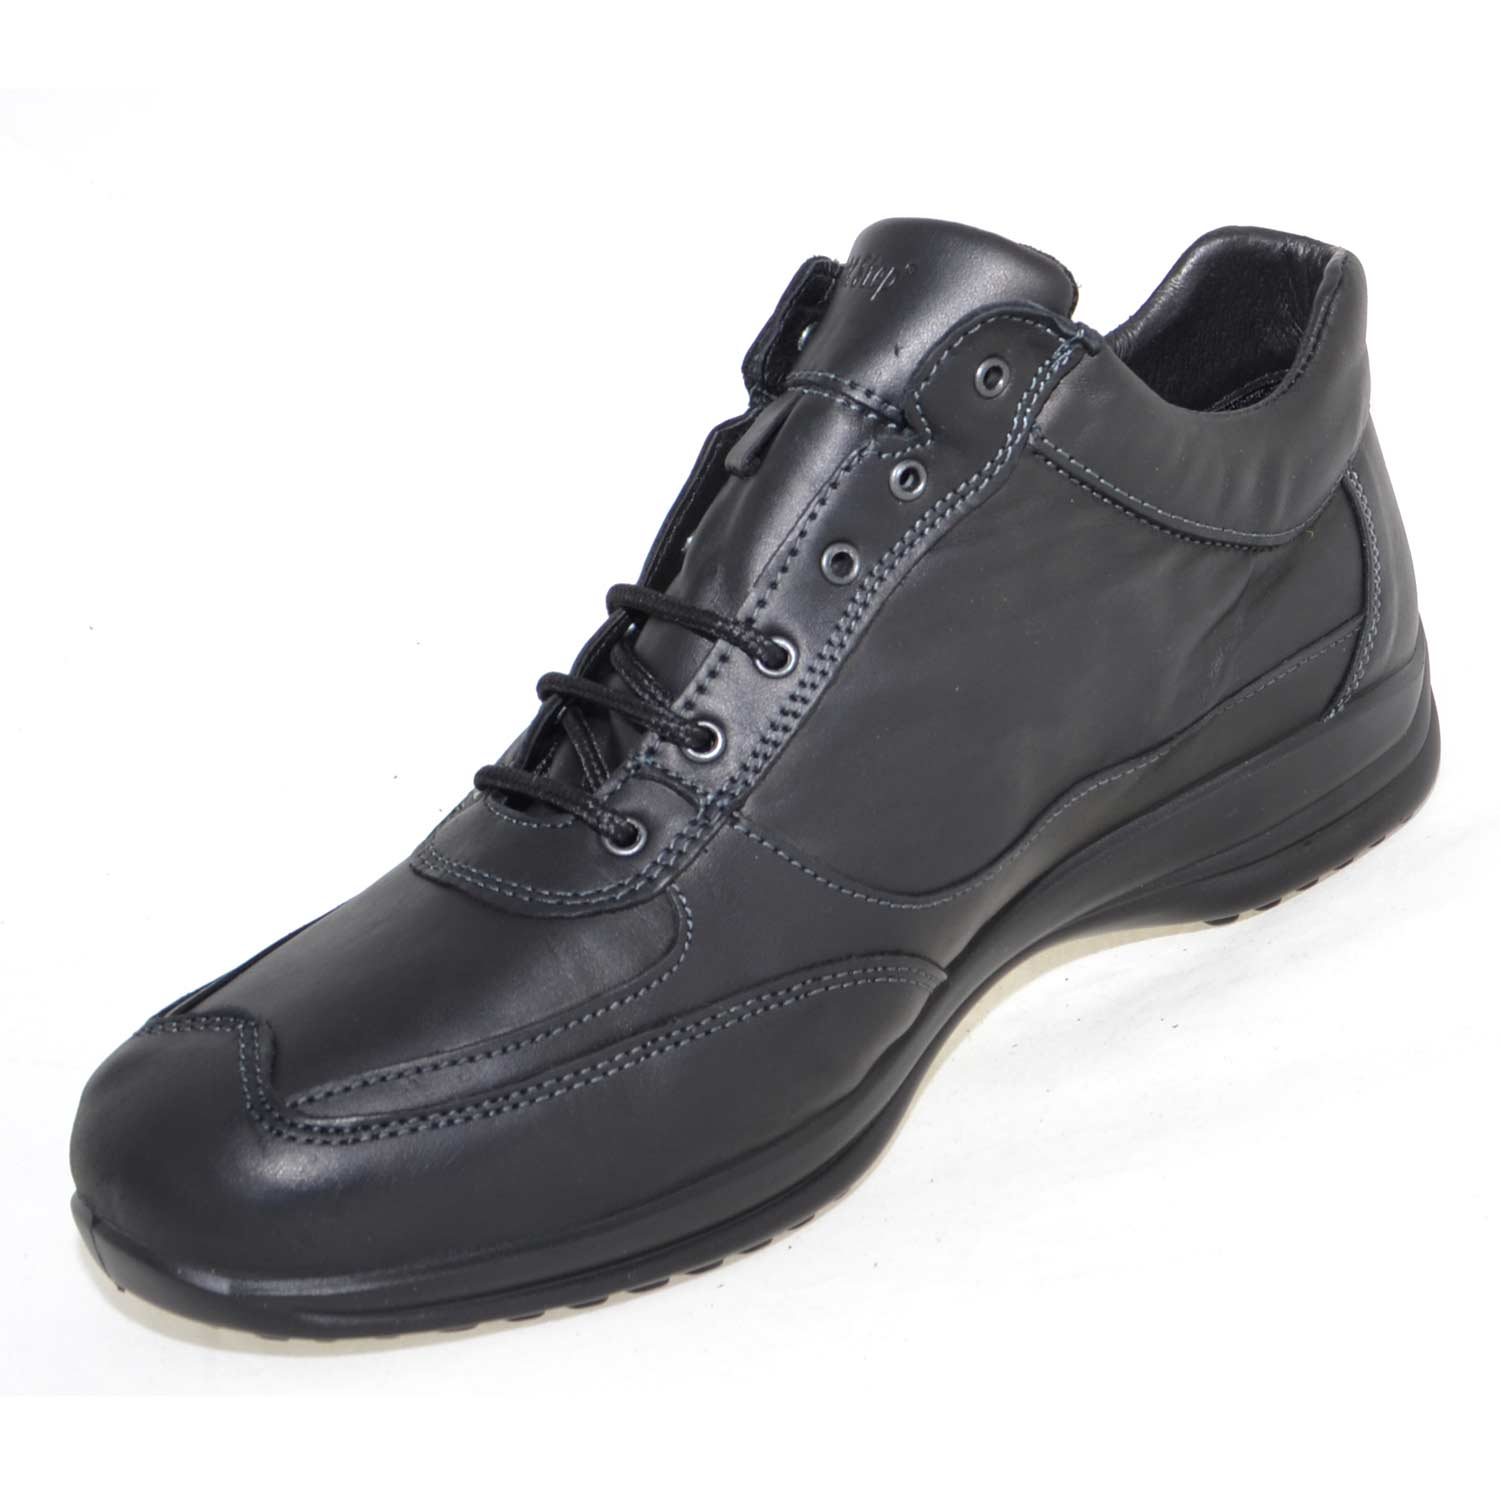 best sneakers 1f18f 9c815 Sneakers Sportive Scarpe nere Uomo Light Step GRISPORT Made in Italy Man  Shoes comfort tessuto leggero e comode uomo comfort grisport | MaluShoes